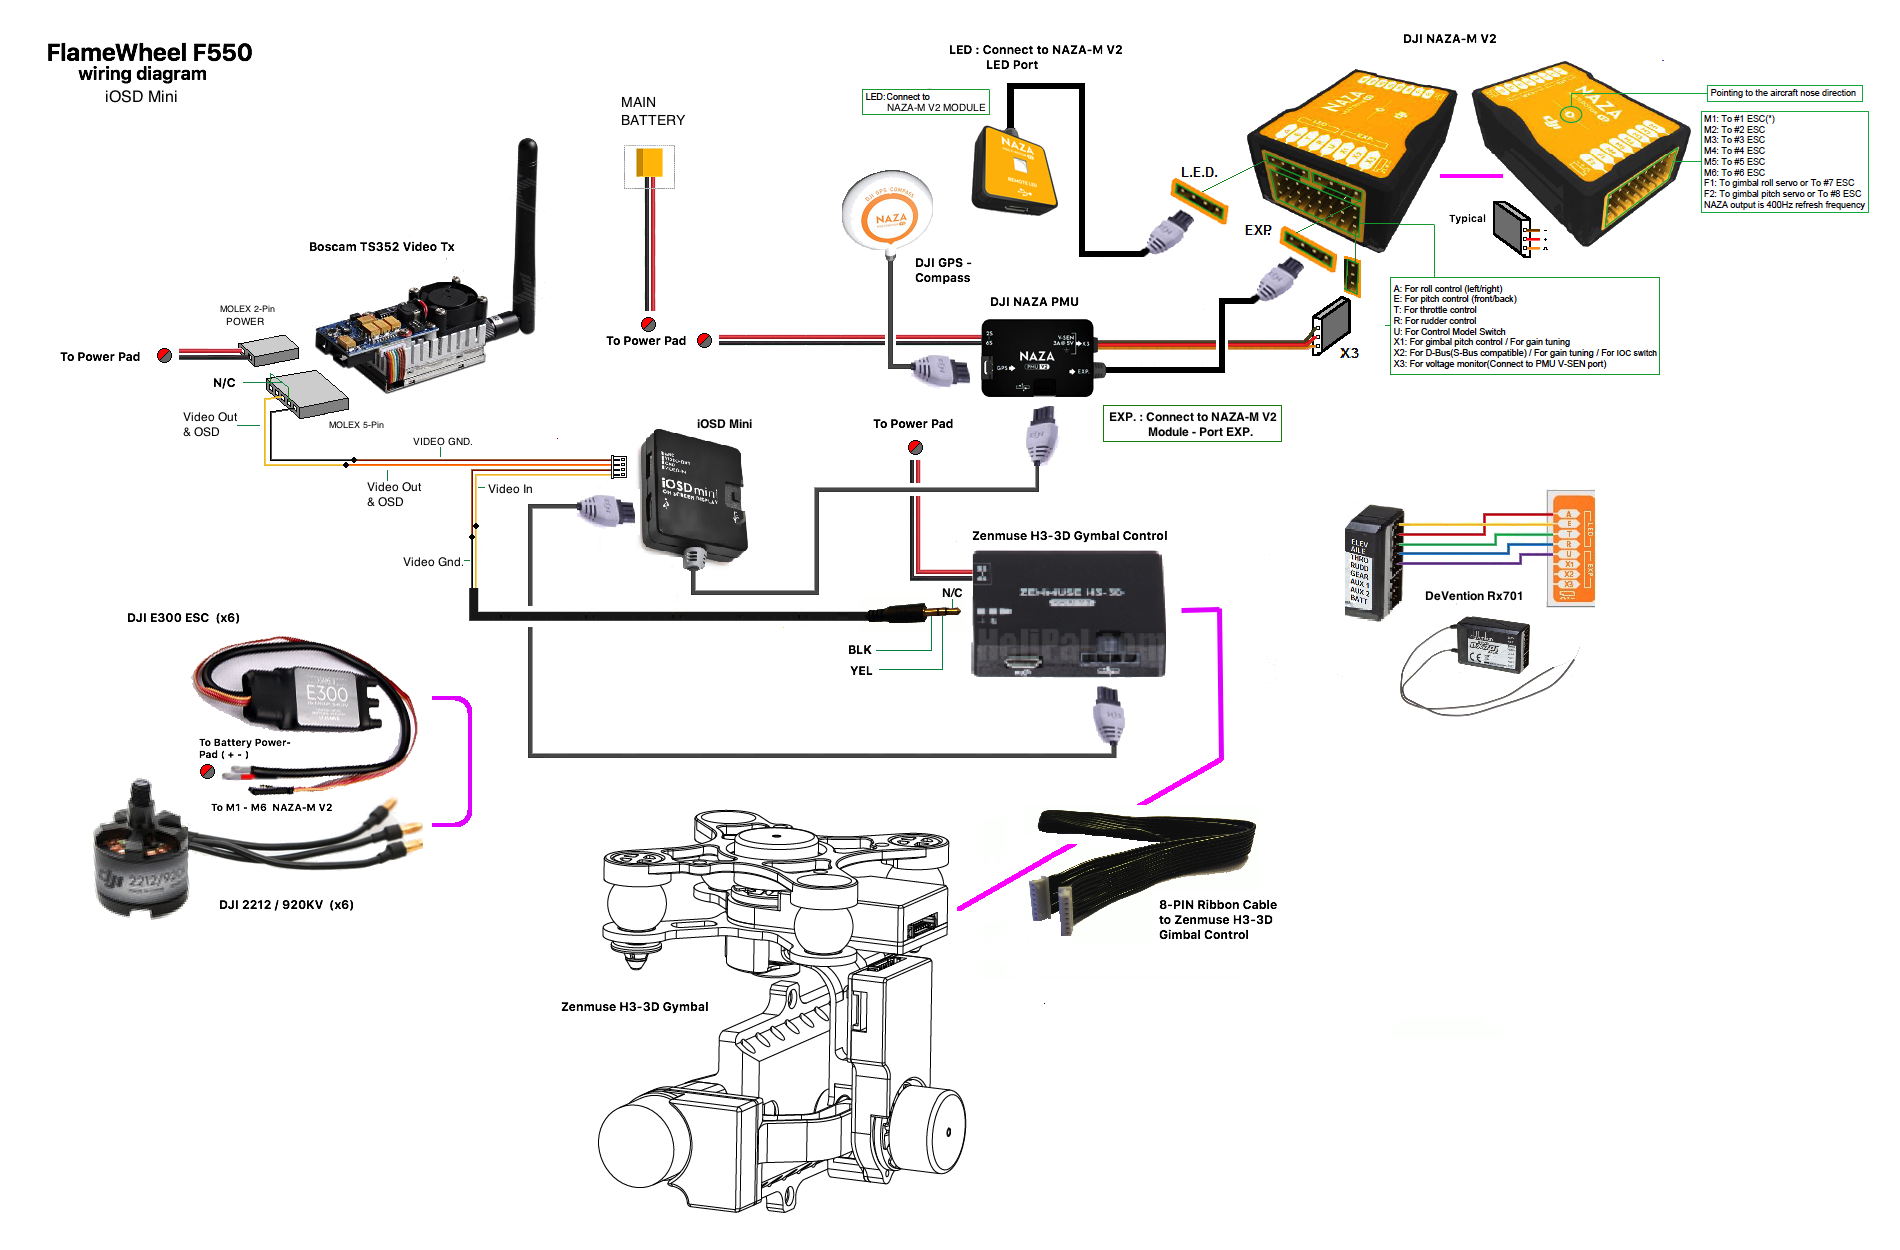 naza m v wiring diagram naza image wiring diagram dji flame wheel f450 and f550 owners th dji forum on naza m v2 wiring diagram